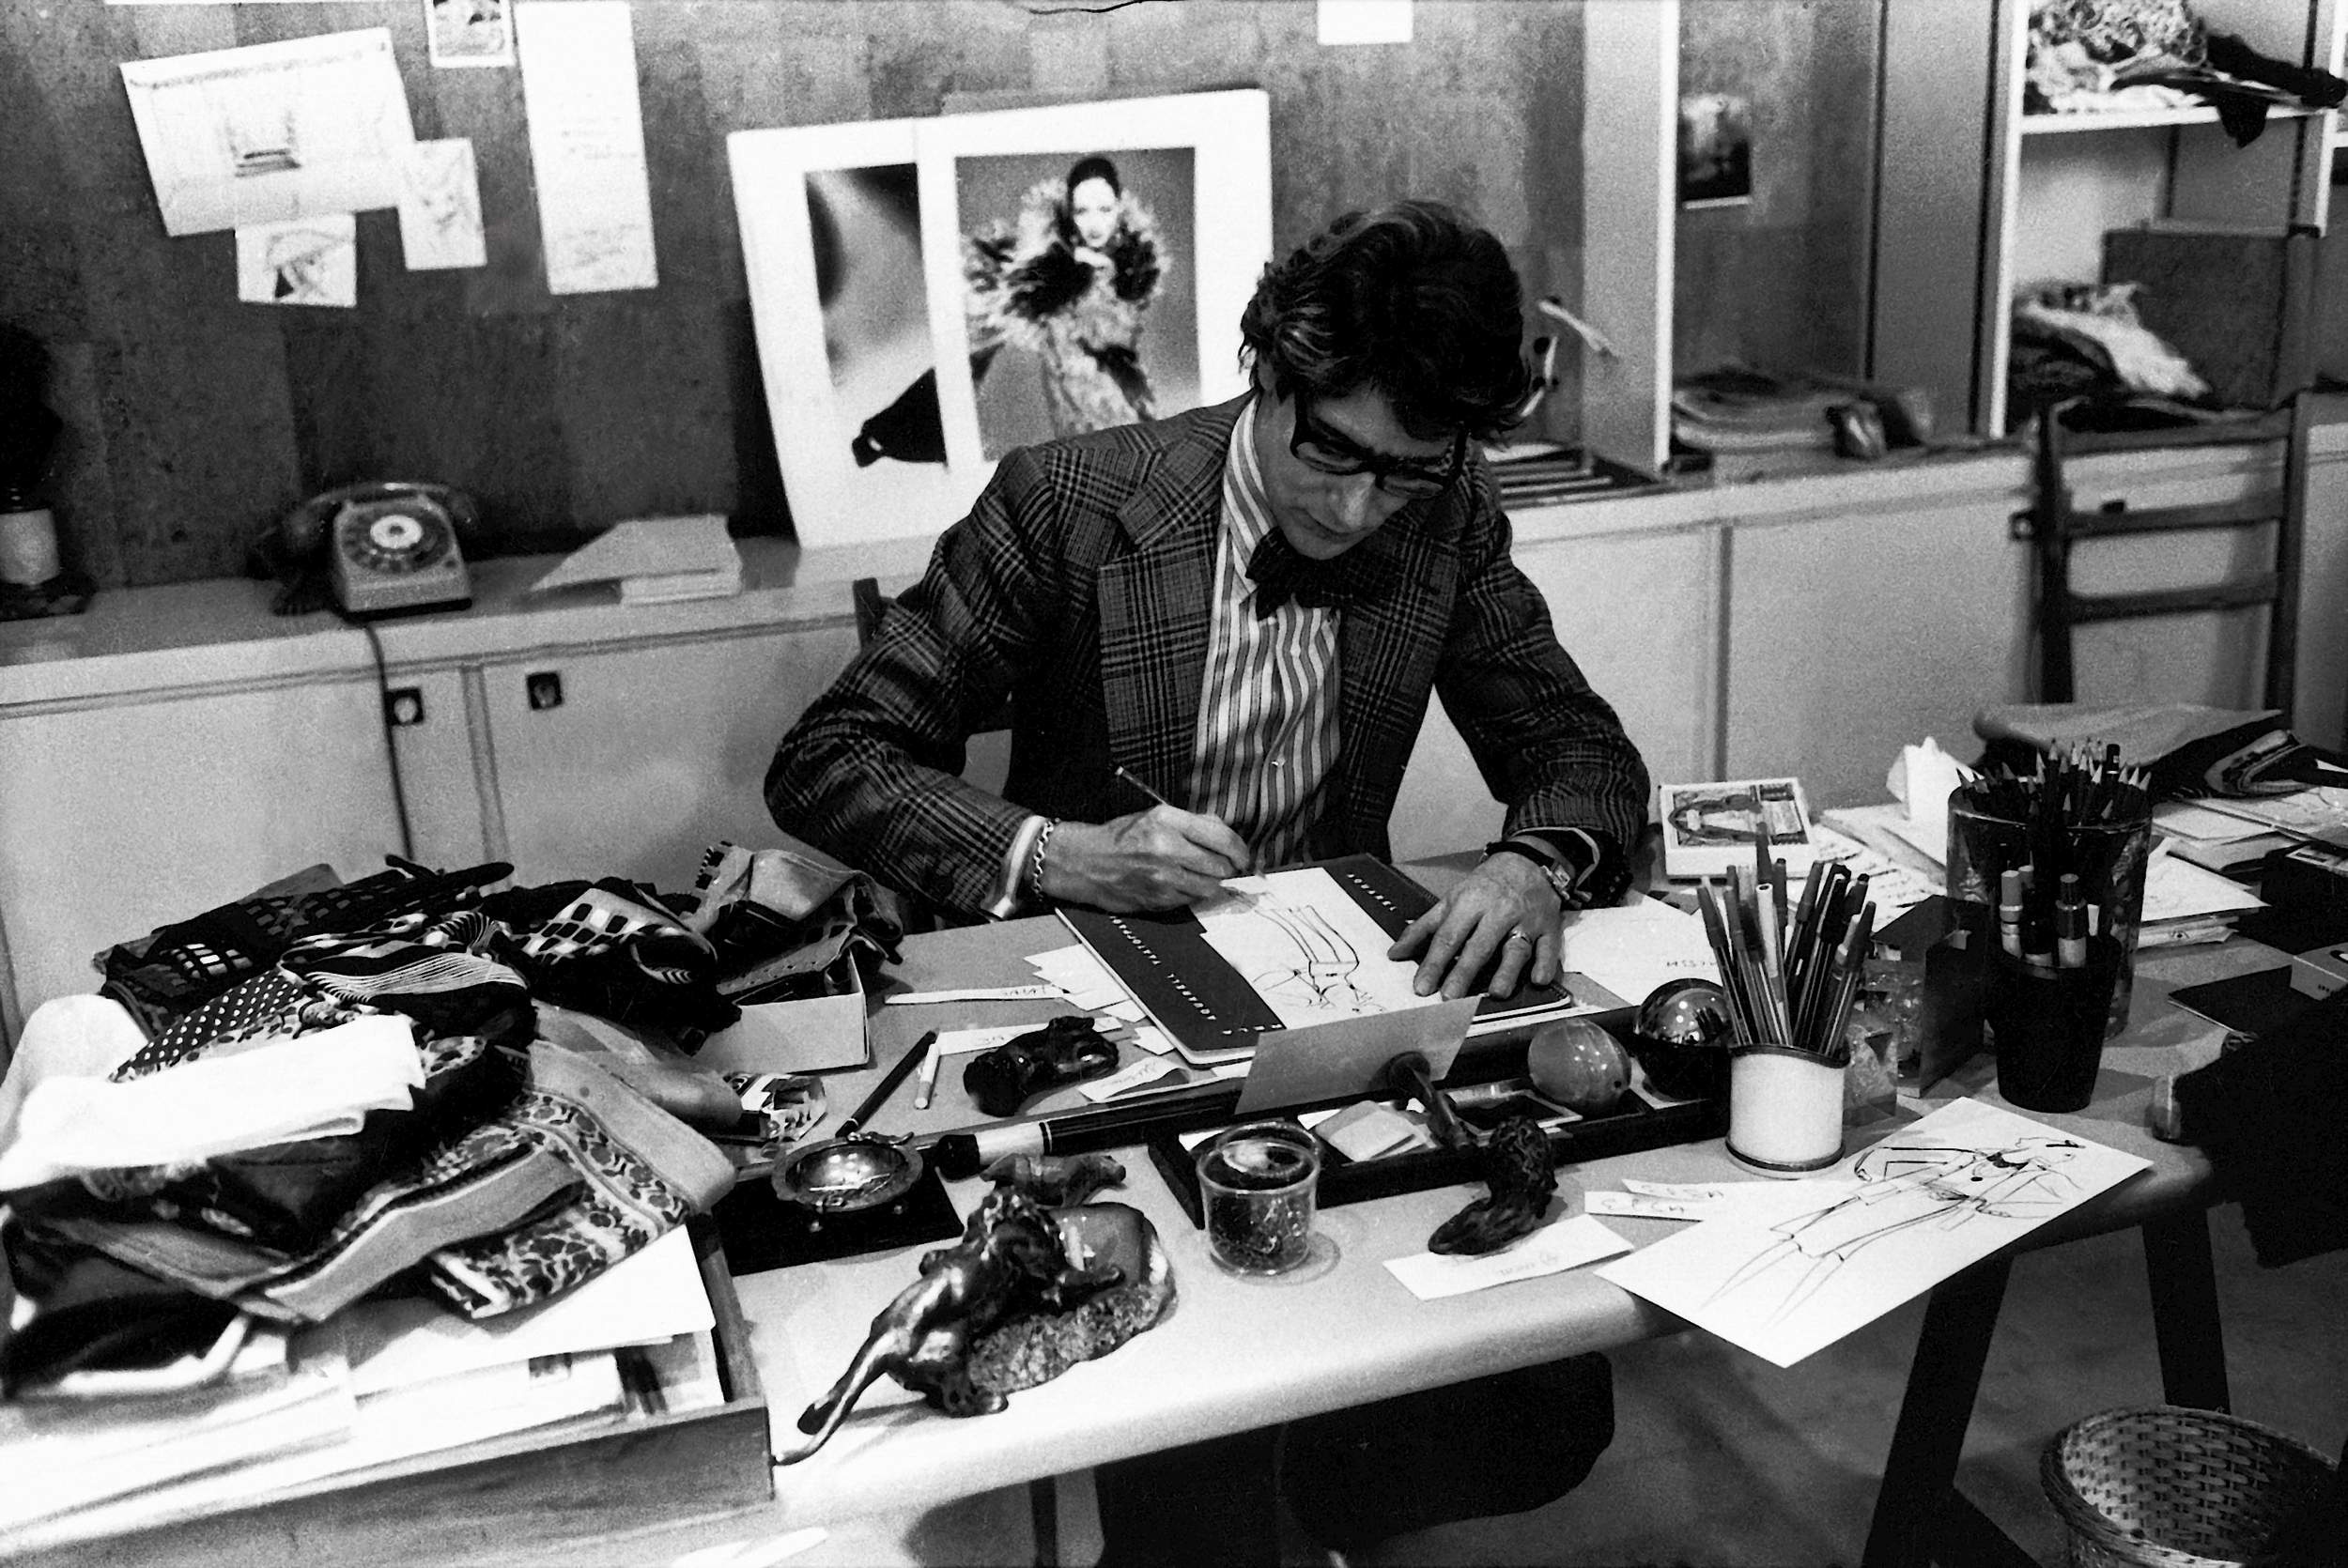 The couturier at work in 1976 in his studio 5 avenue Marceau, Paris. © Fondation Pierre Bergé – Yves Saint Laurent, Paris / Guy Marineau.